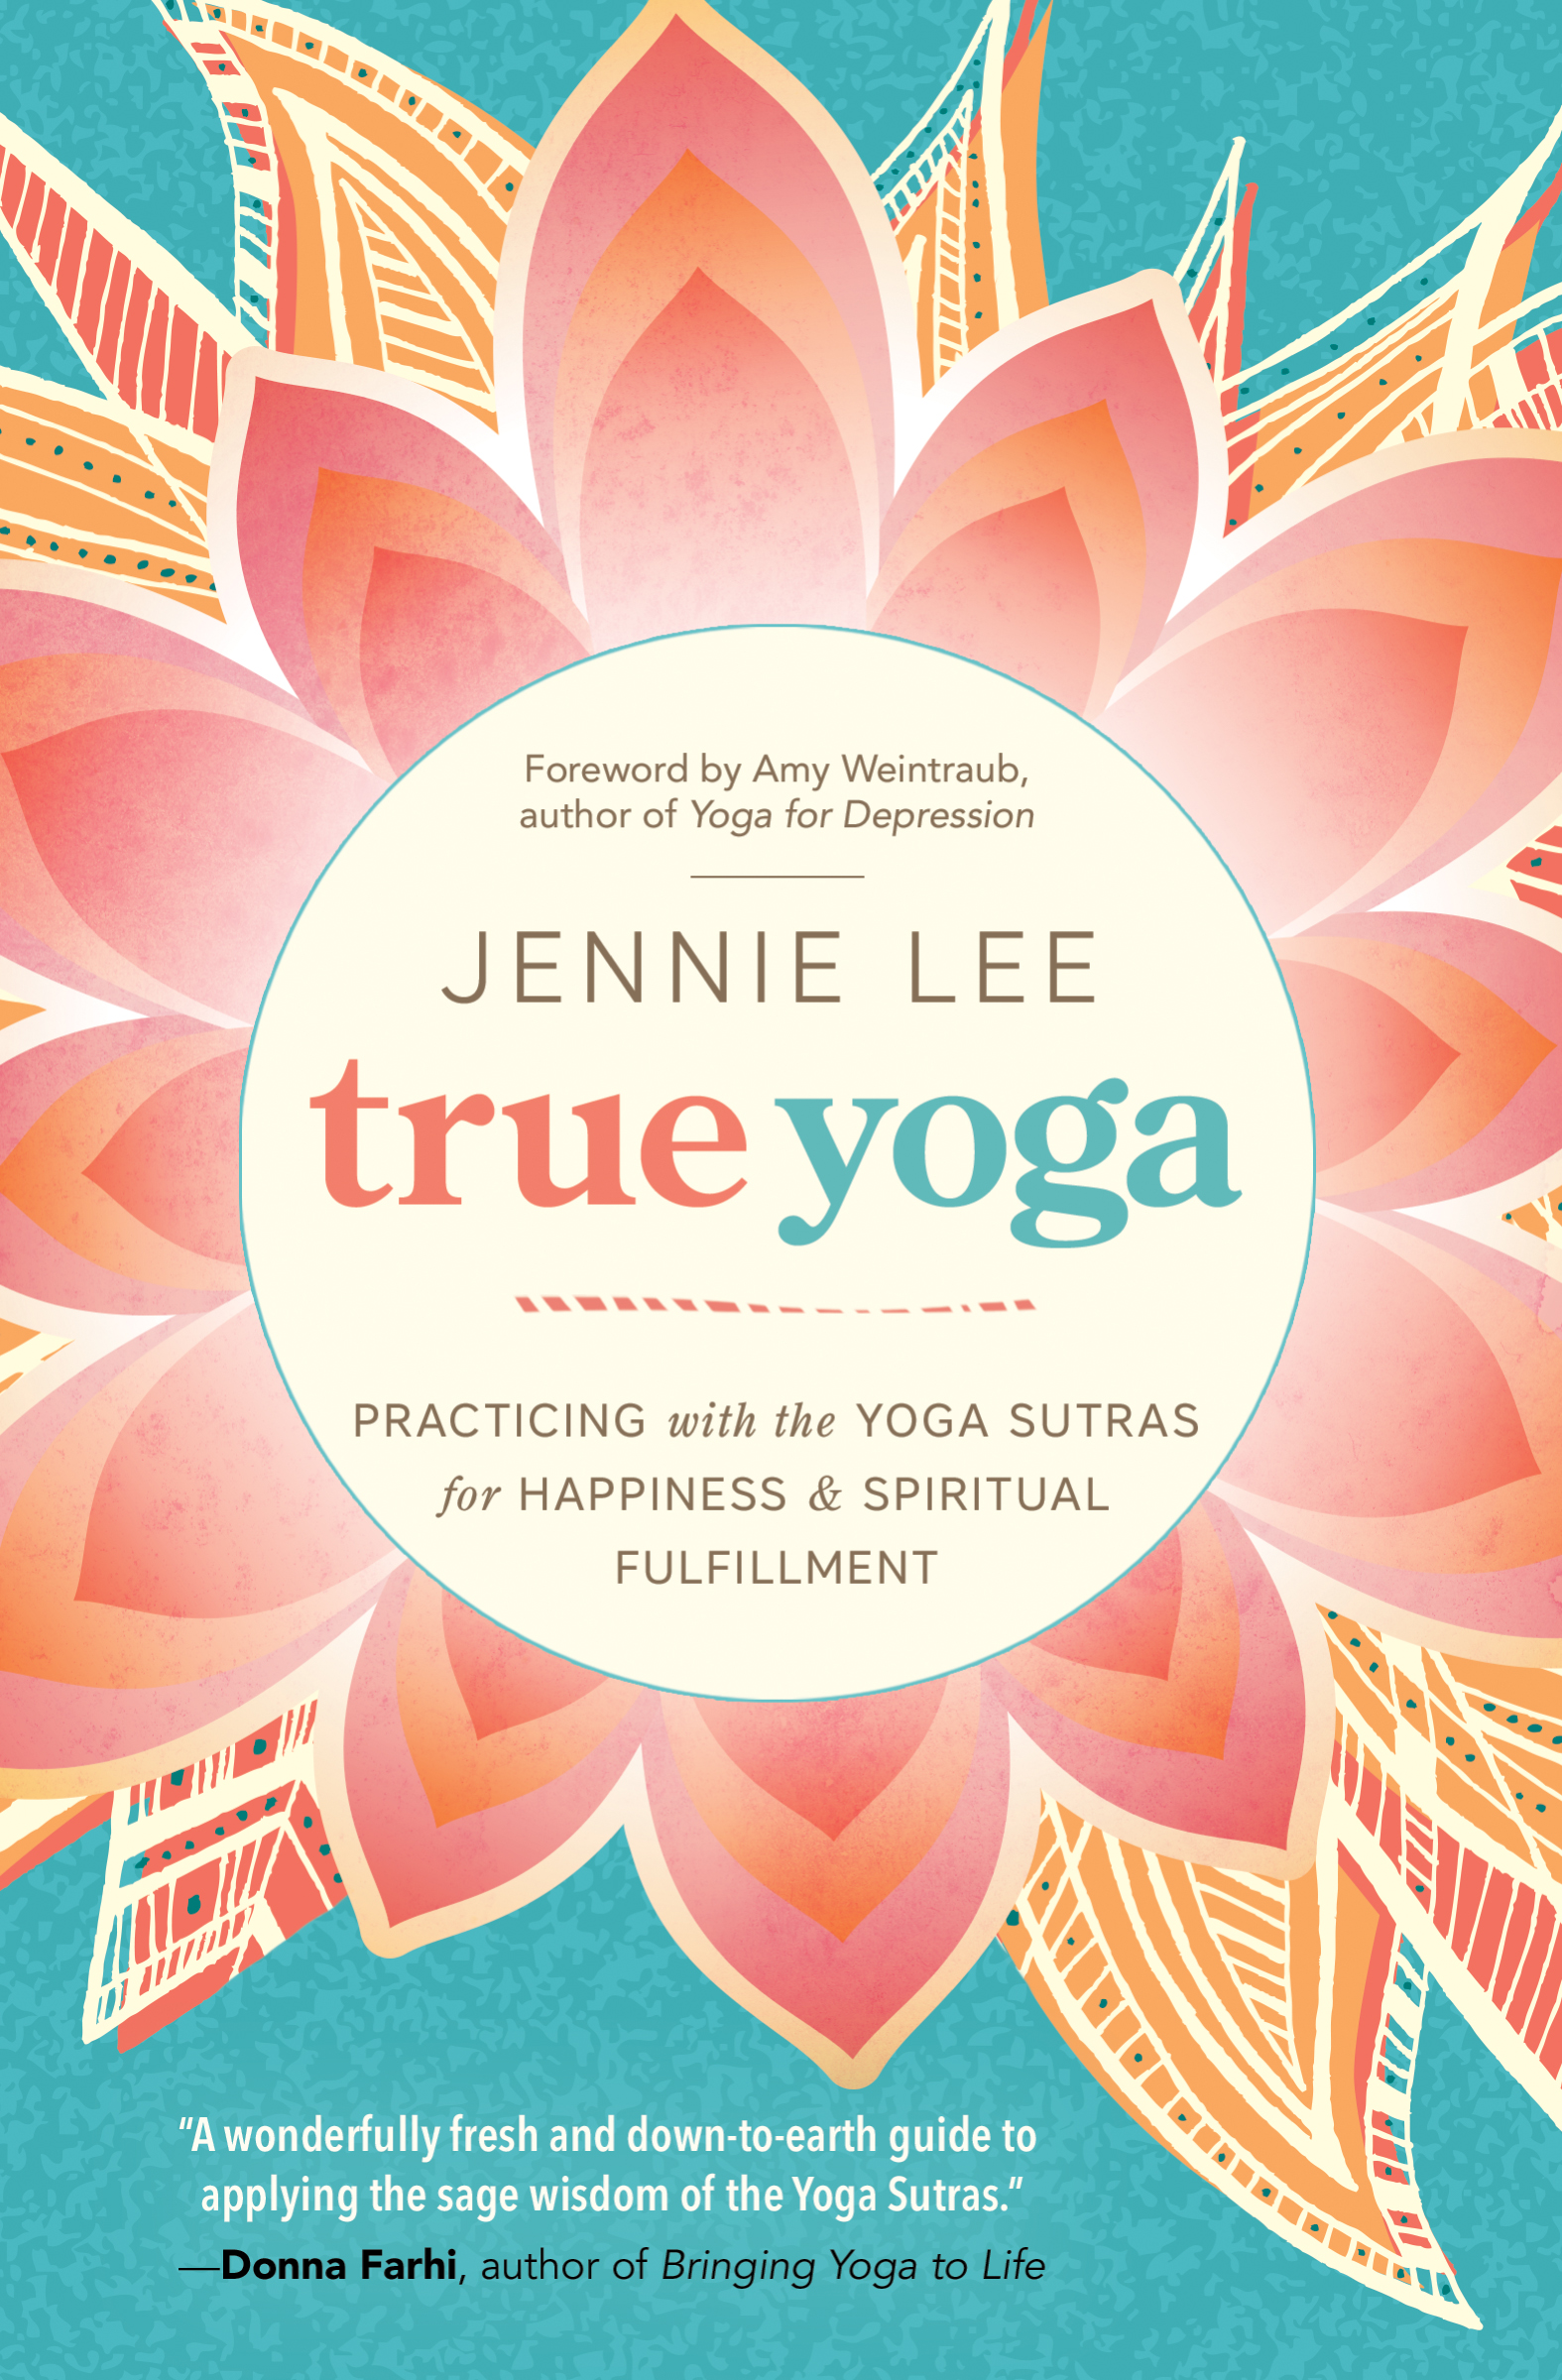 Jennie Lee Yoga Therapy